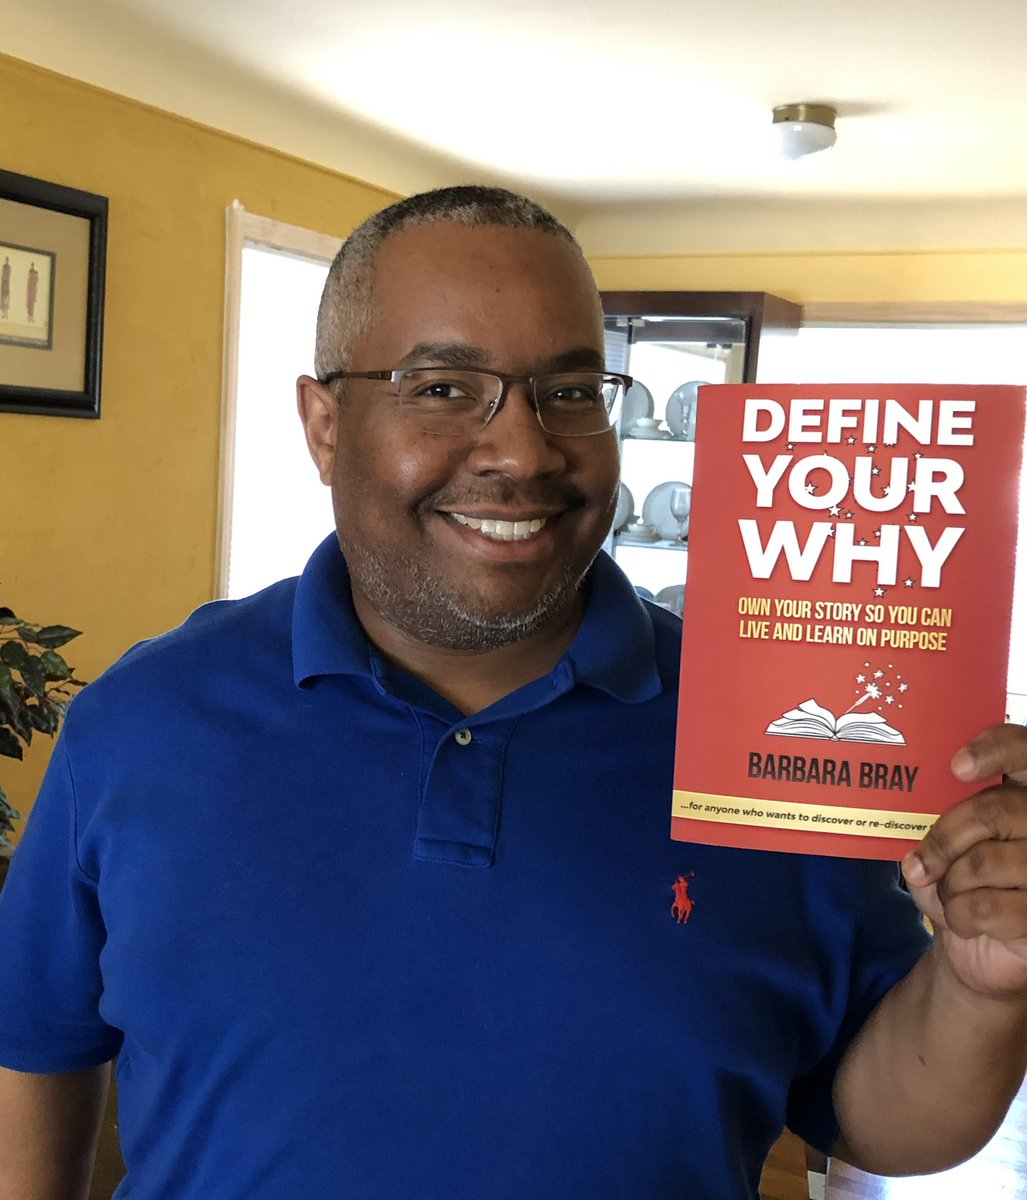 Guess what I'll be reading this week?Super excited! @bbray27 #rethink_learning #edchat